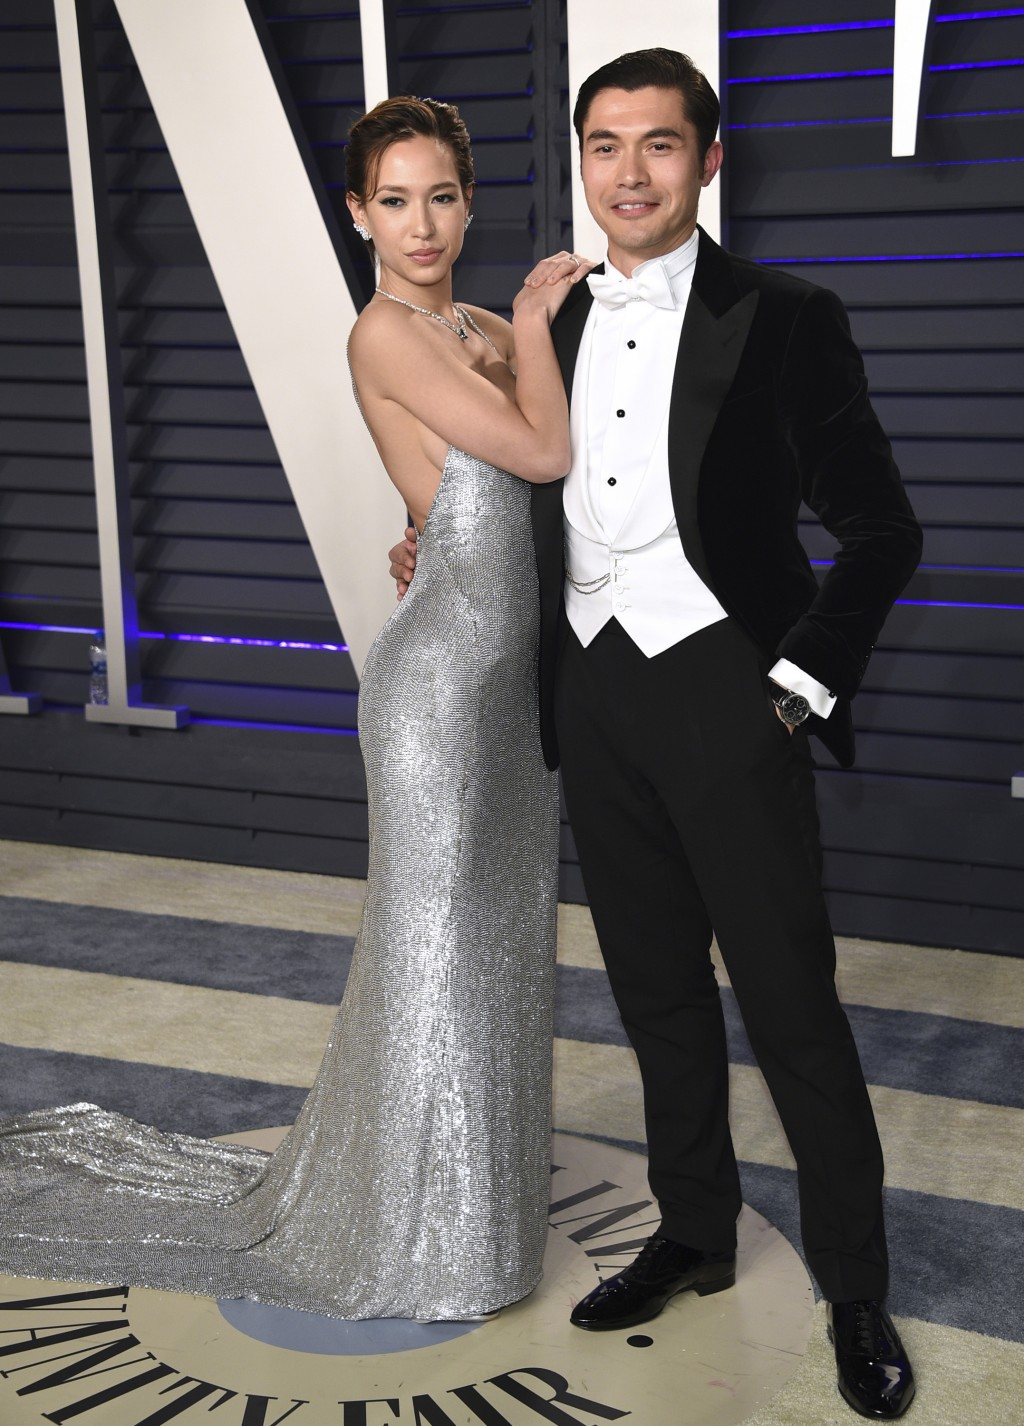 Henry Golding, right, and Liv Lo arrive at the Vanity Fair Oscar Party on Sunday, Feb. 24, 2019, in Beverly Hills, Calif. (Photo by Evan Agostini/Invi